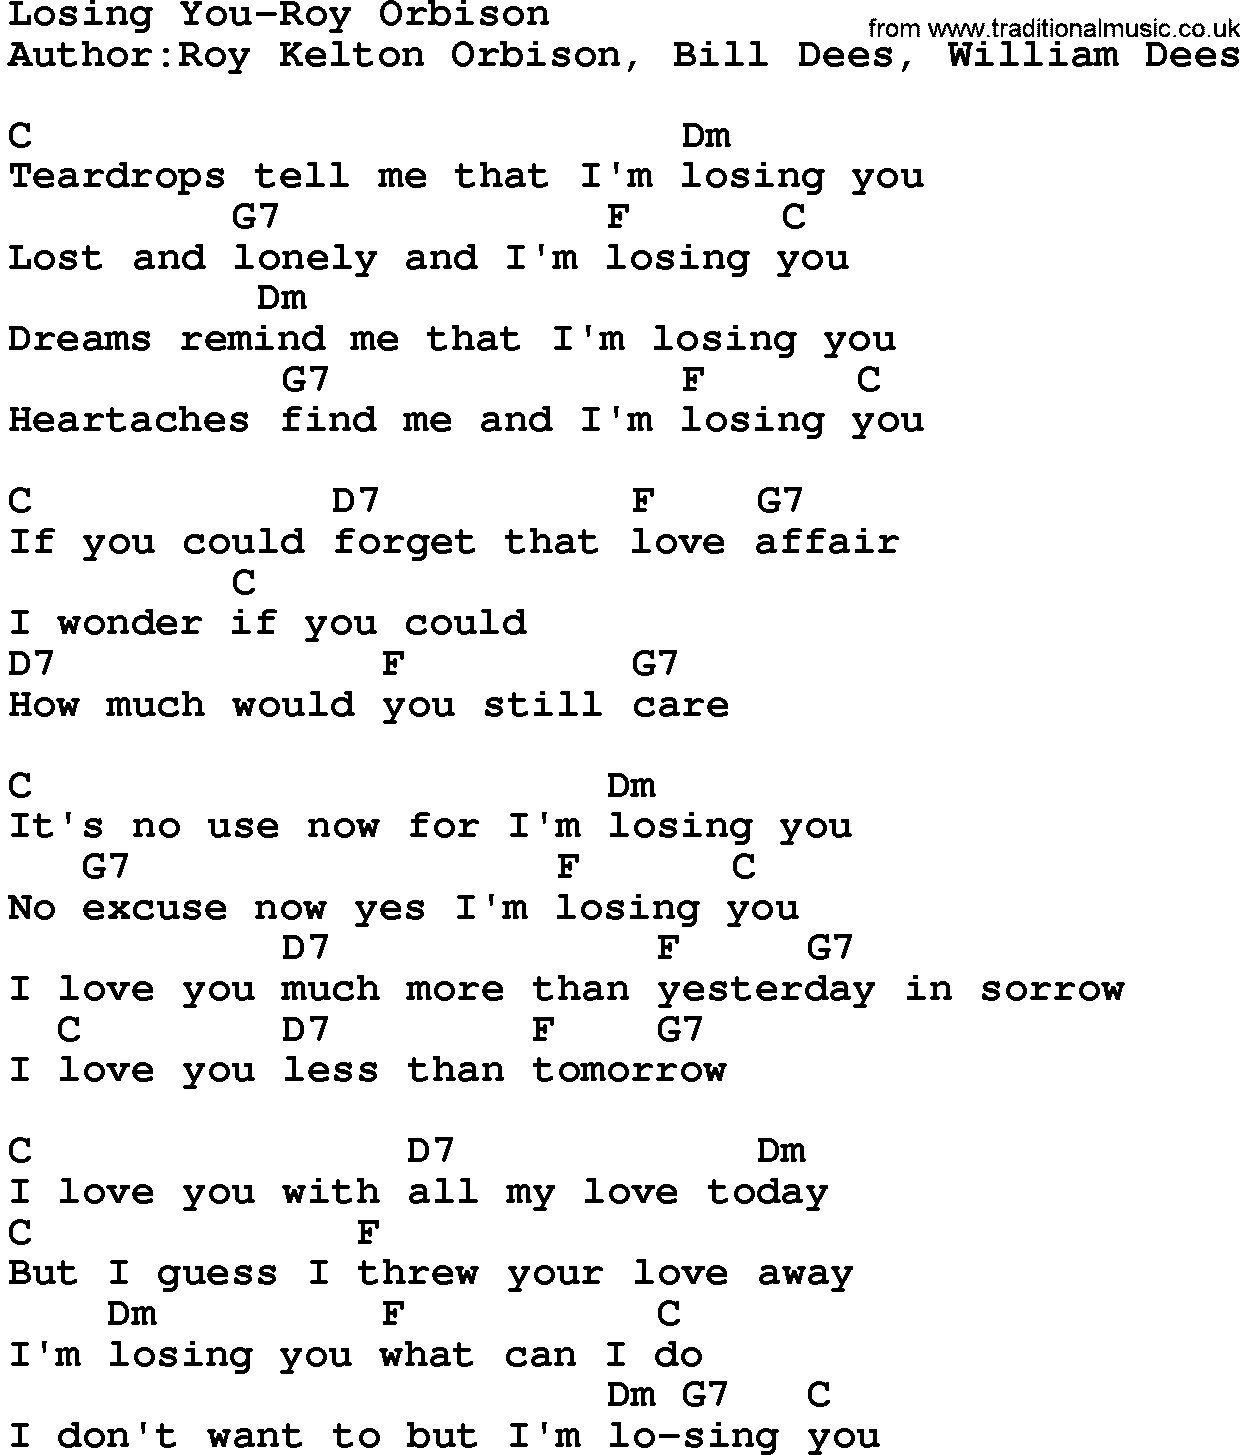 Lyrics containing the term: roy orbison